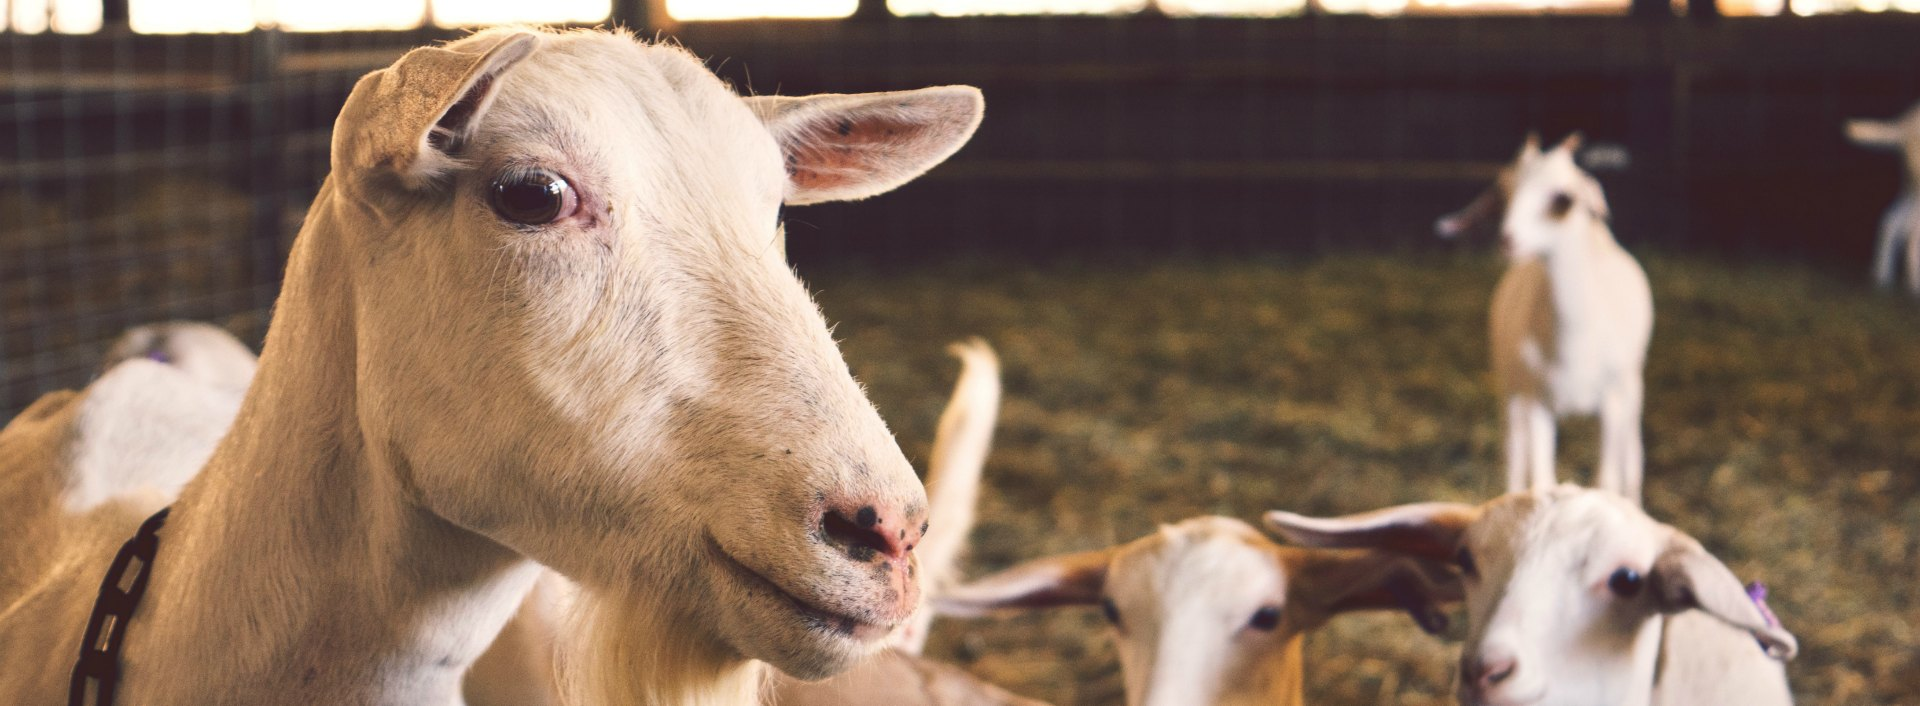 """One of the common English phrases we mis-say is """"a scapegoat"""", not """"an escape goat""""!"""